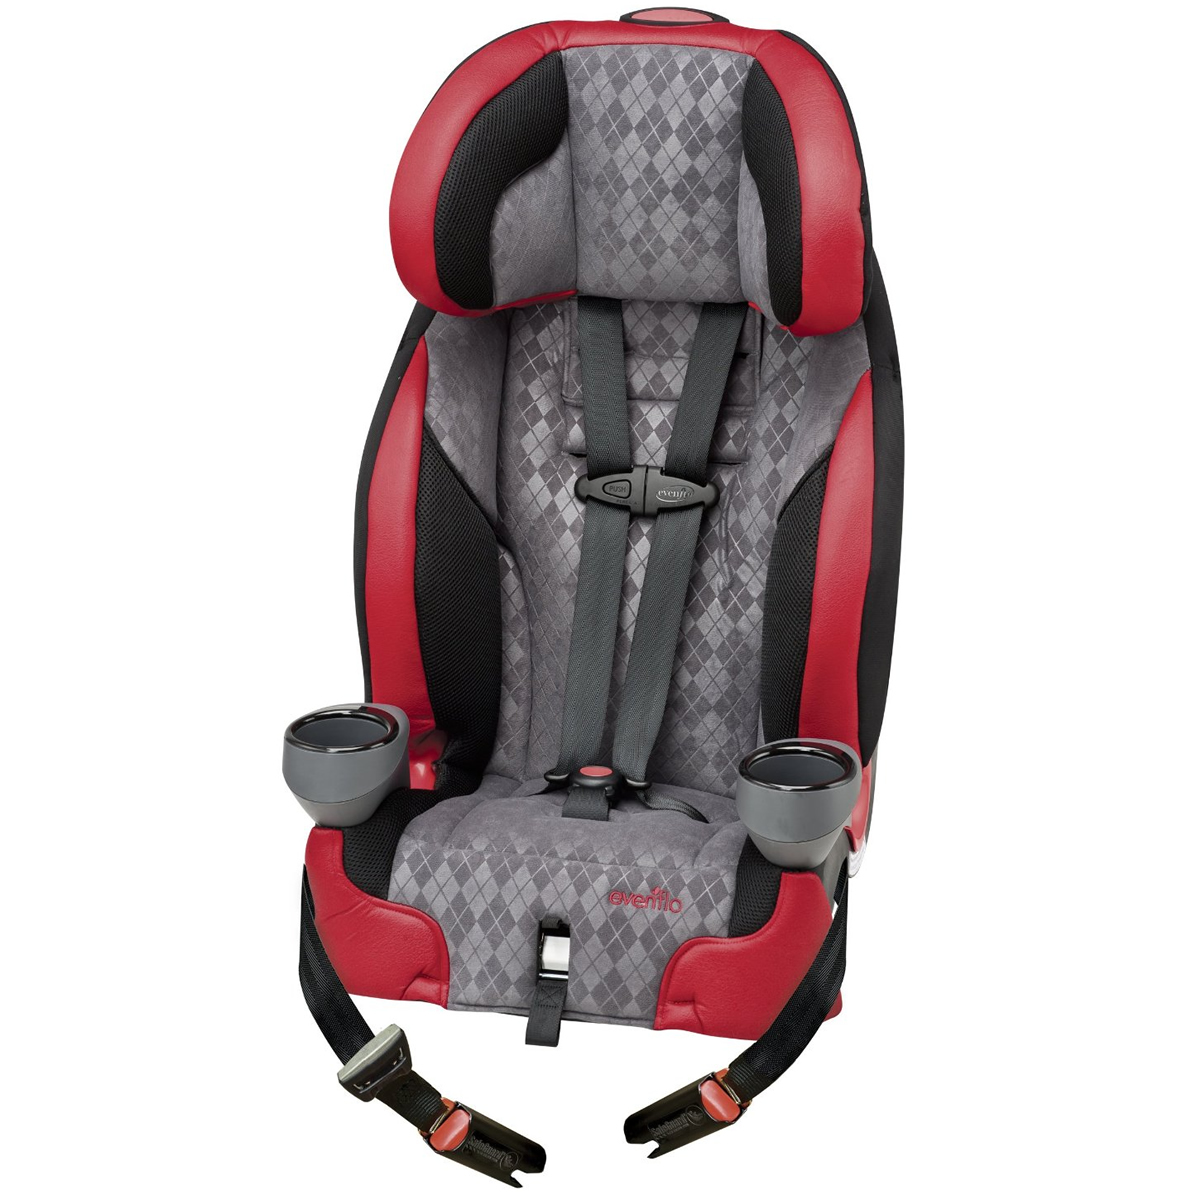 evenflo securekid lx car seat princeton. Black Bedroom Furniture Sets. Home Design Ideas